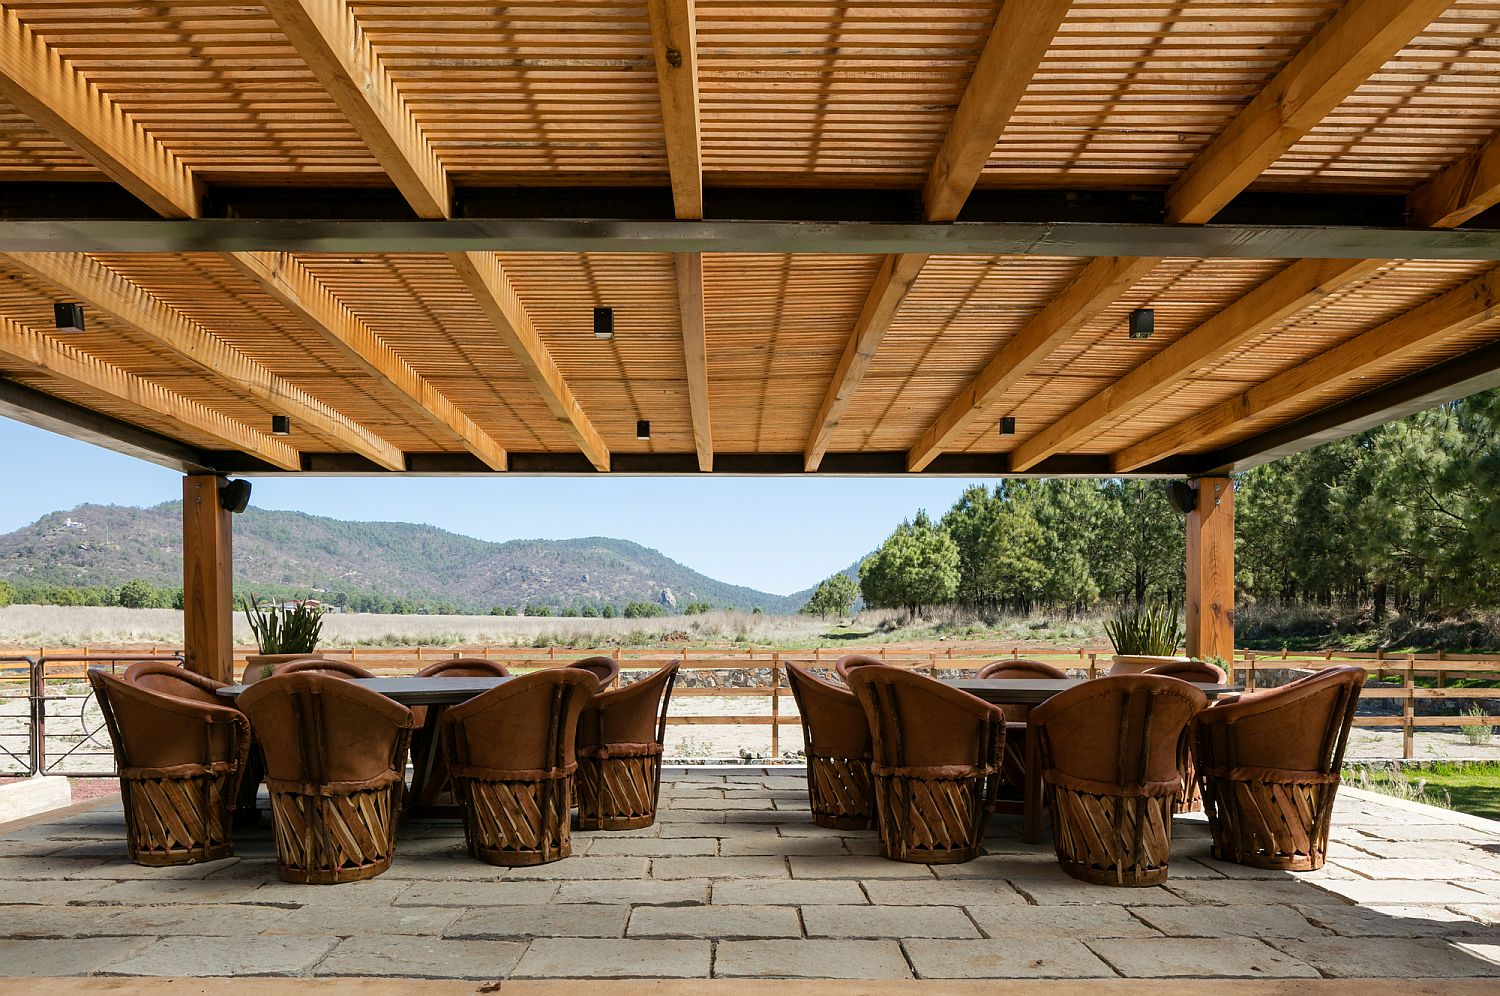 Sweeping, covered wooden deck with lovely views